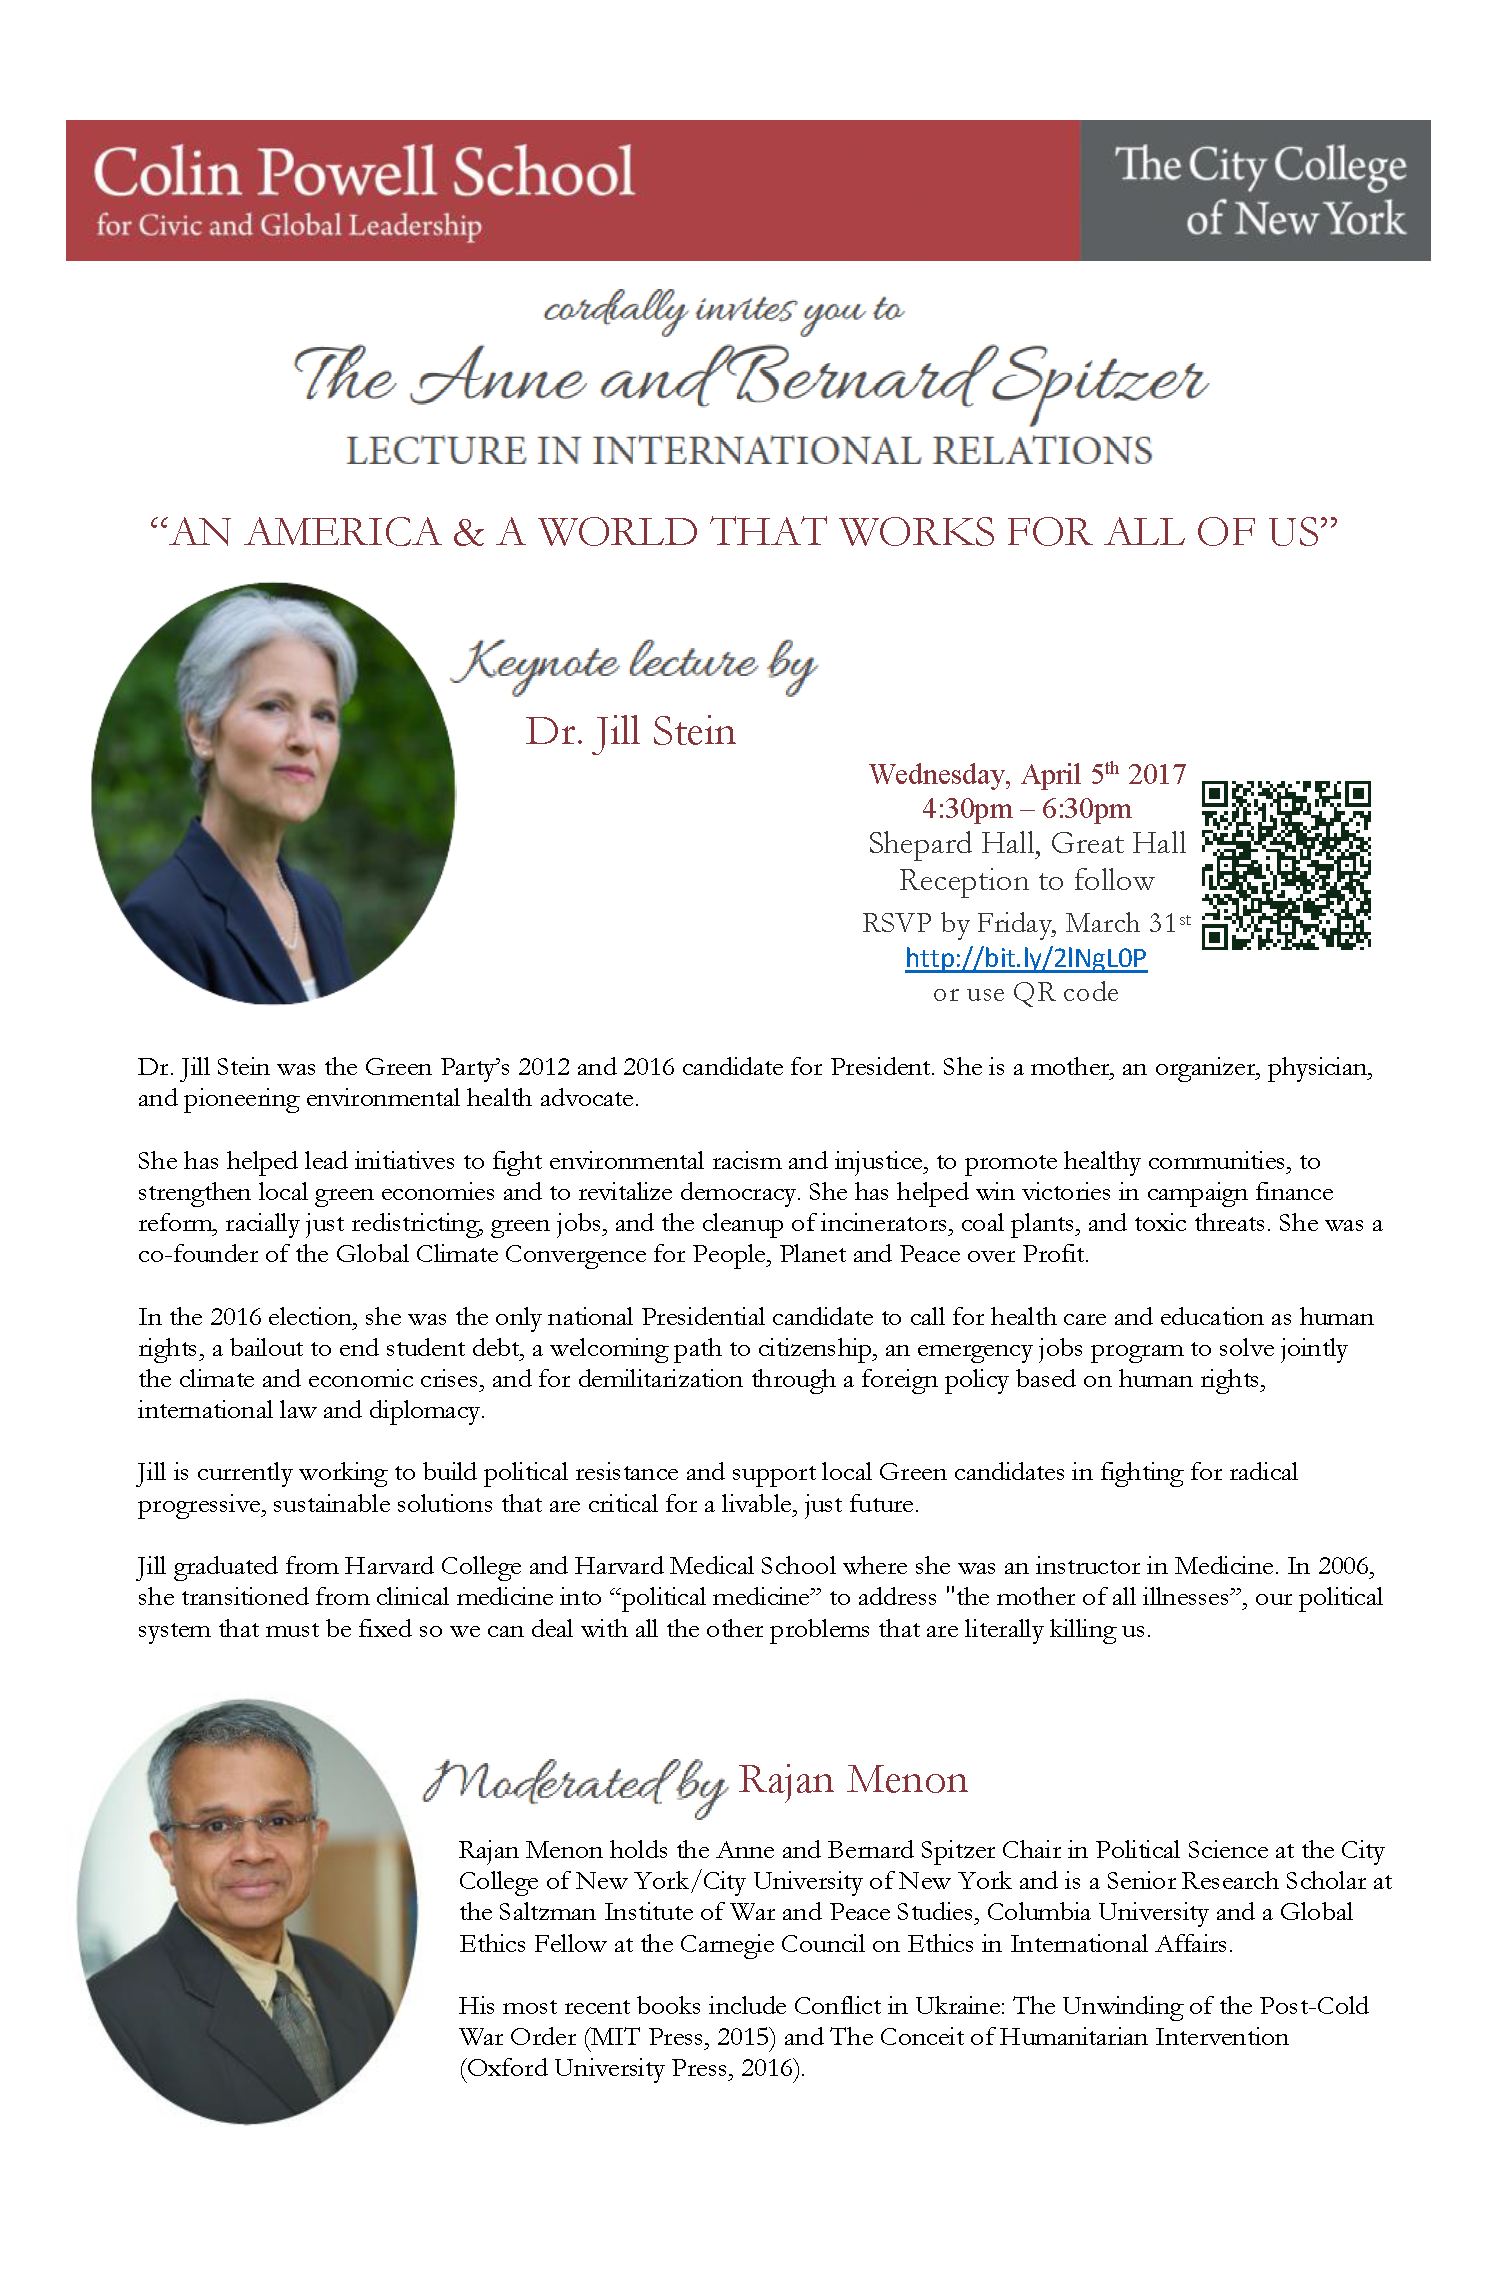 The 4th annual Anne and Bernard Spitzer Lecture featuring